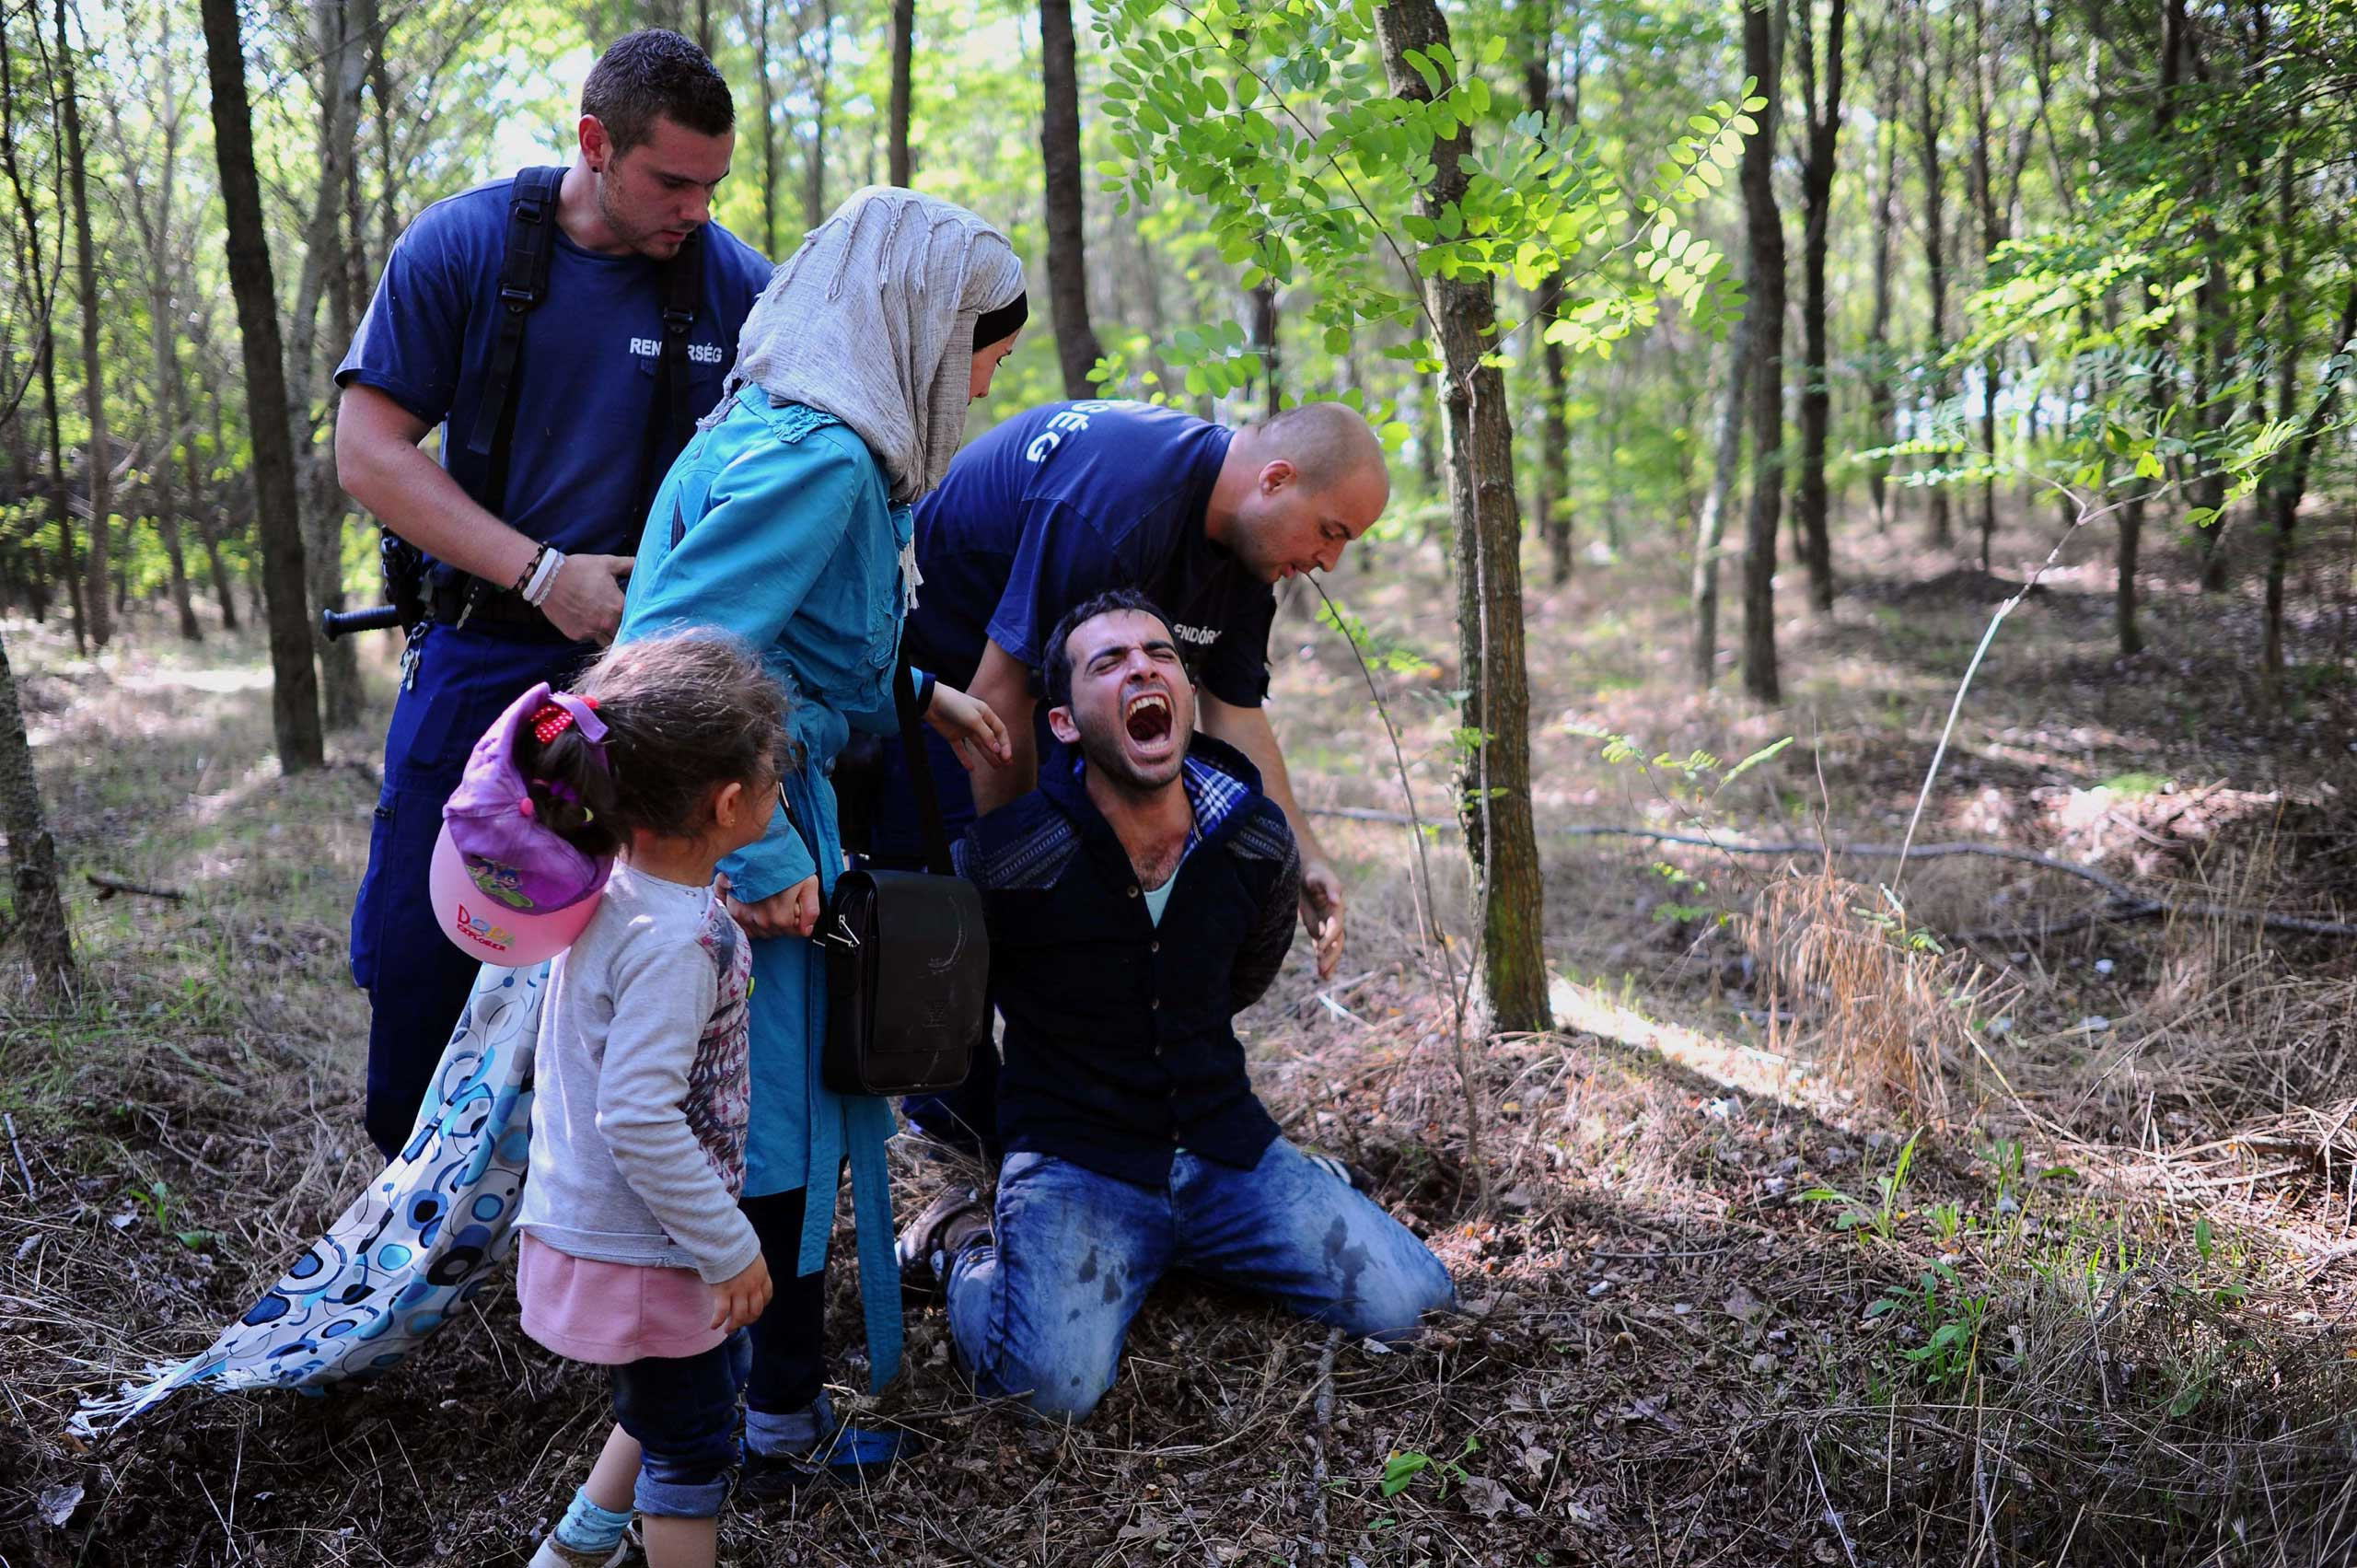 A father of a migrants family is arrested by the local police near the village of Roszke on the Hungarian-Serbian border on Aug. 28, 2015.